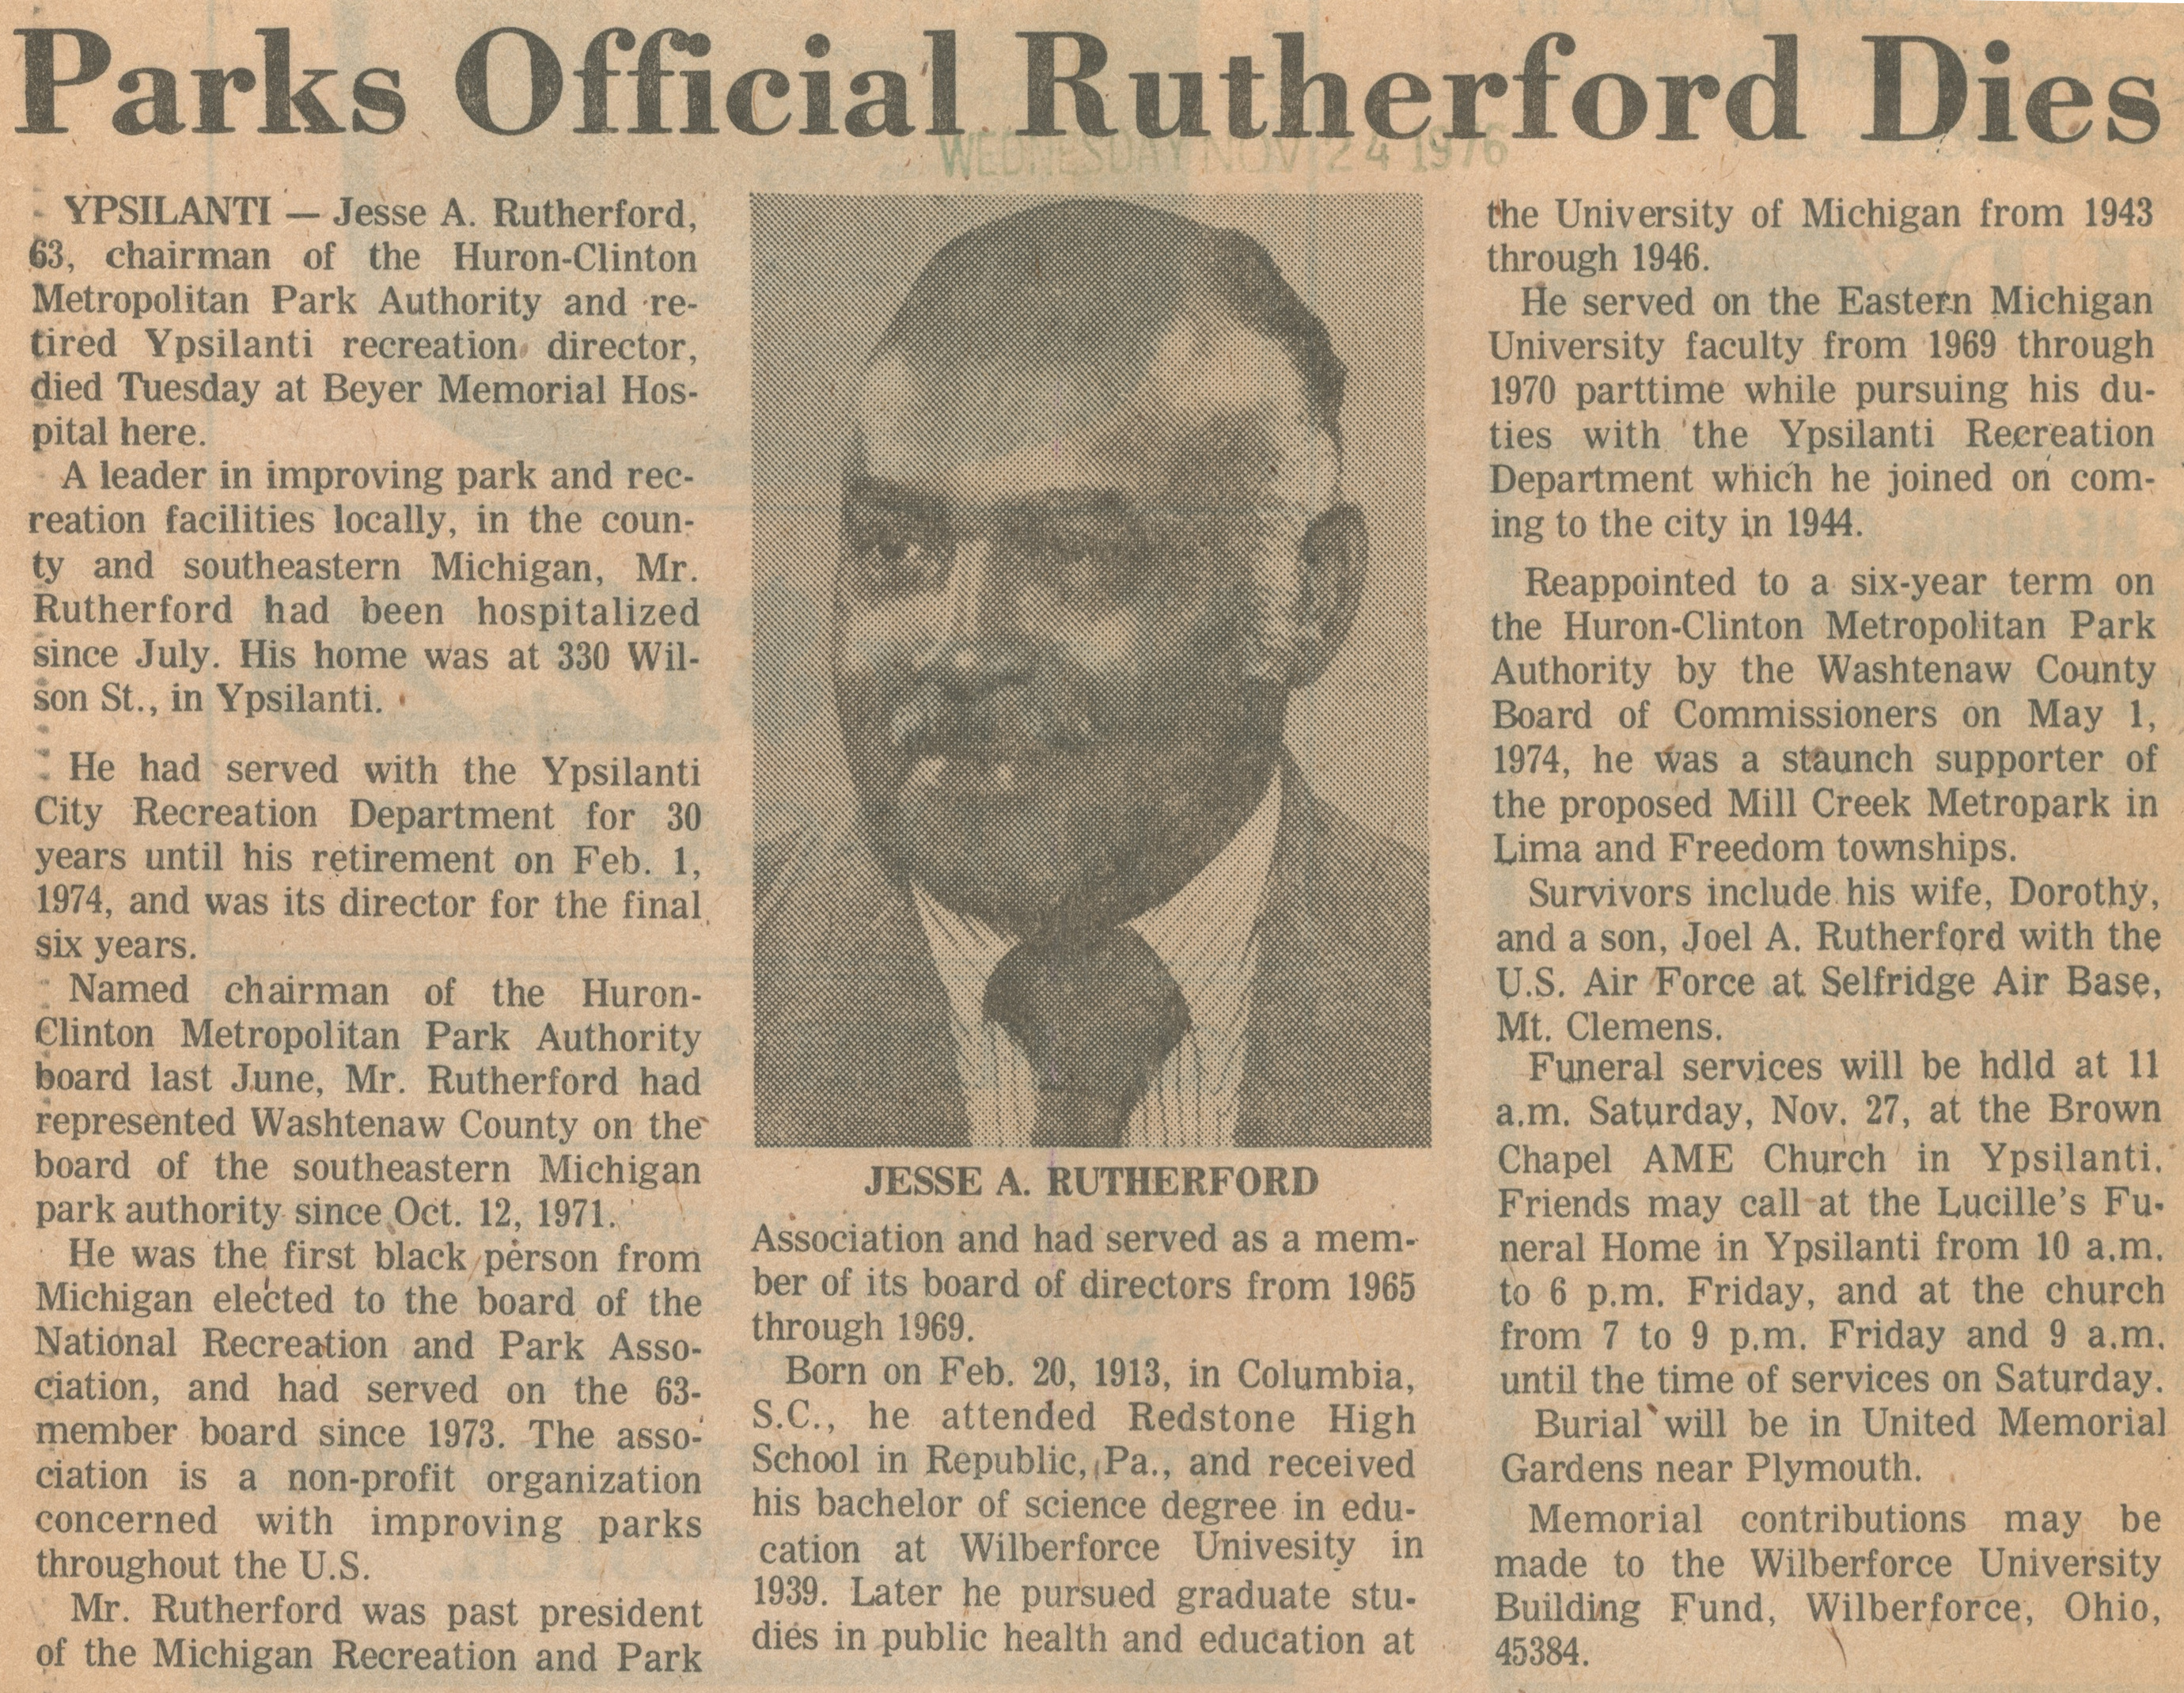 Parks Official Rutherford Dies image